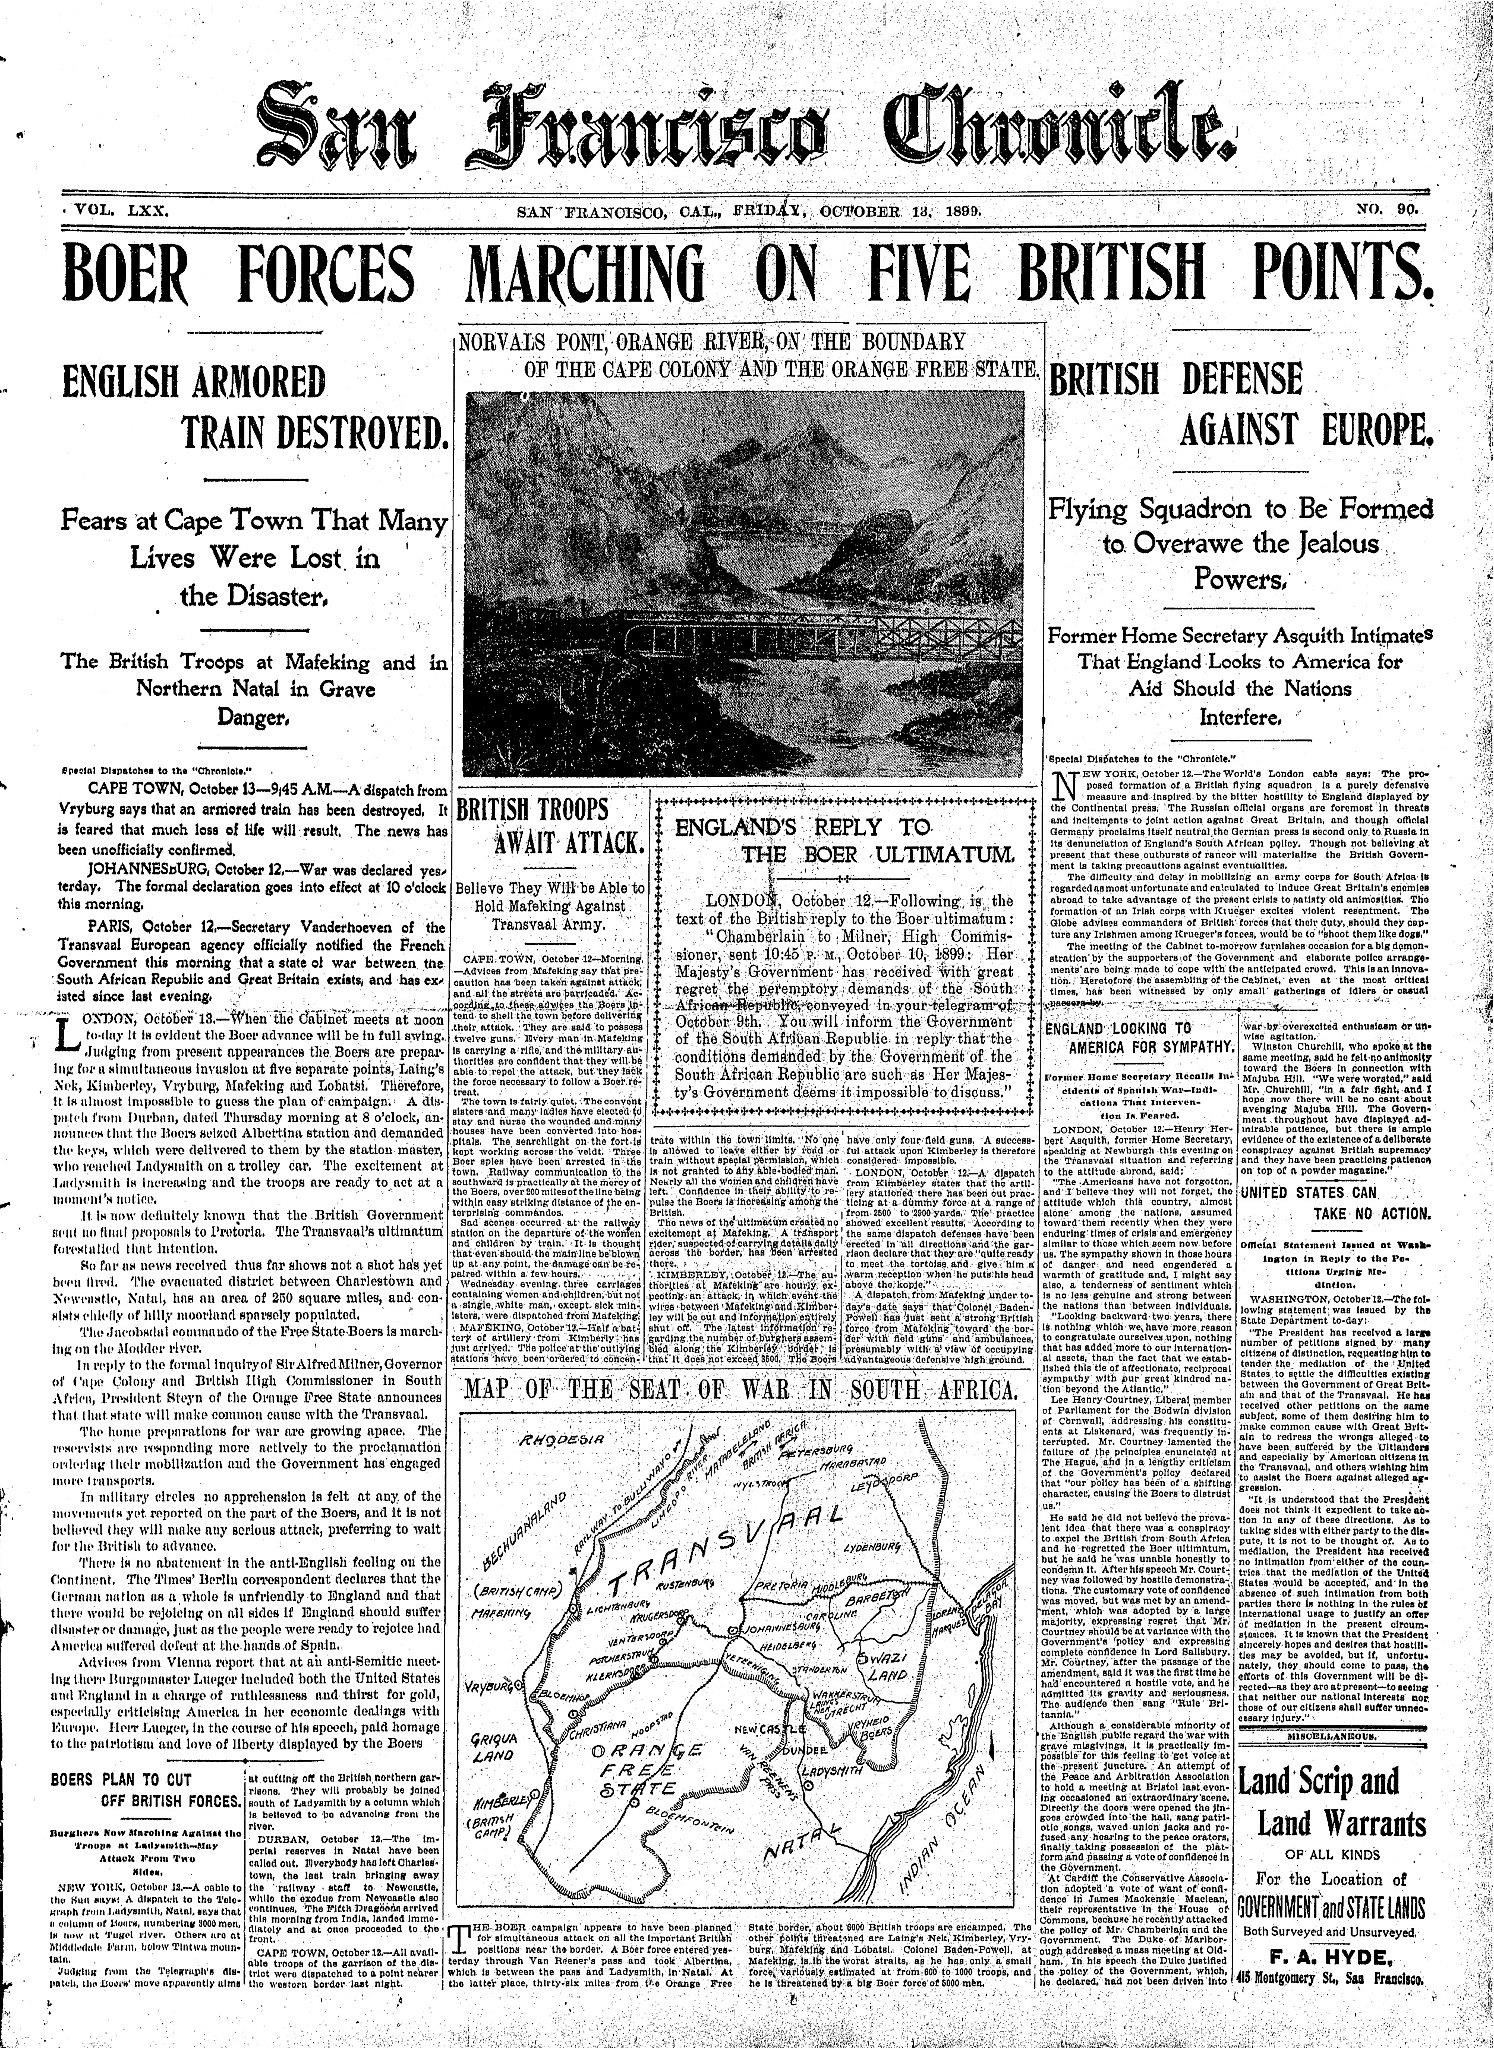 a report on how the english won the boer war in south africa